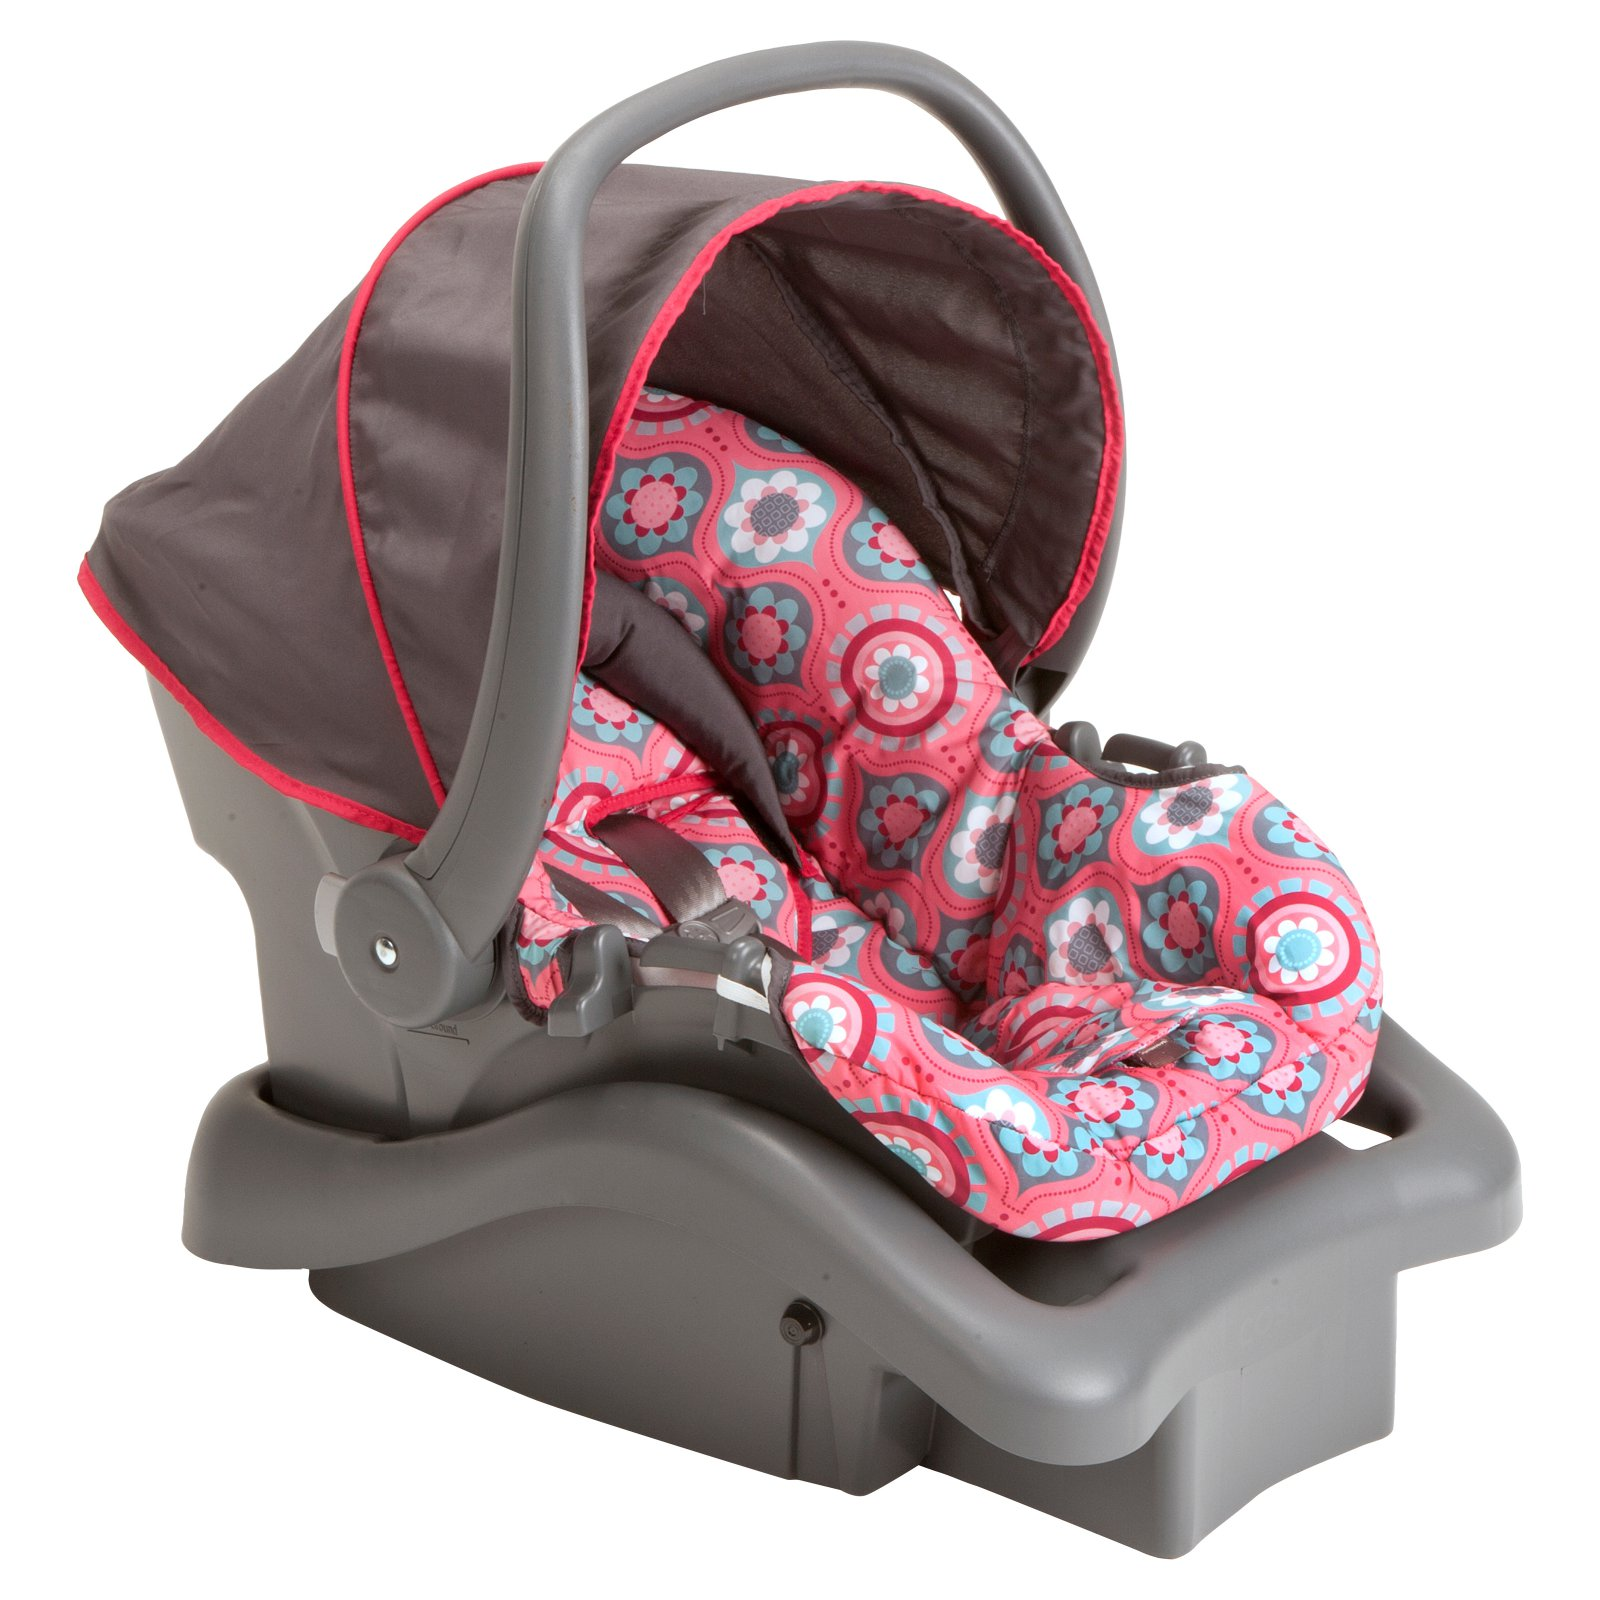 Cosco Light 'n Comfy 22 DX Infant Car Seat, Poppy Field